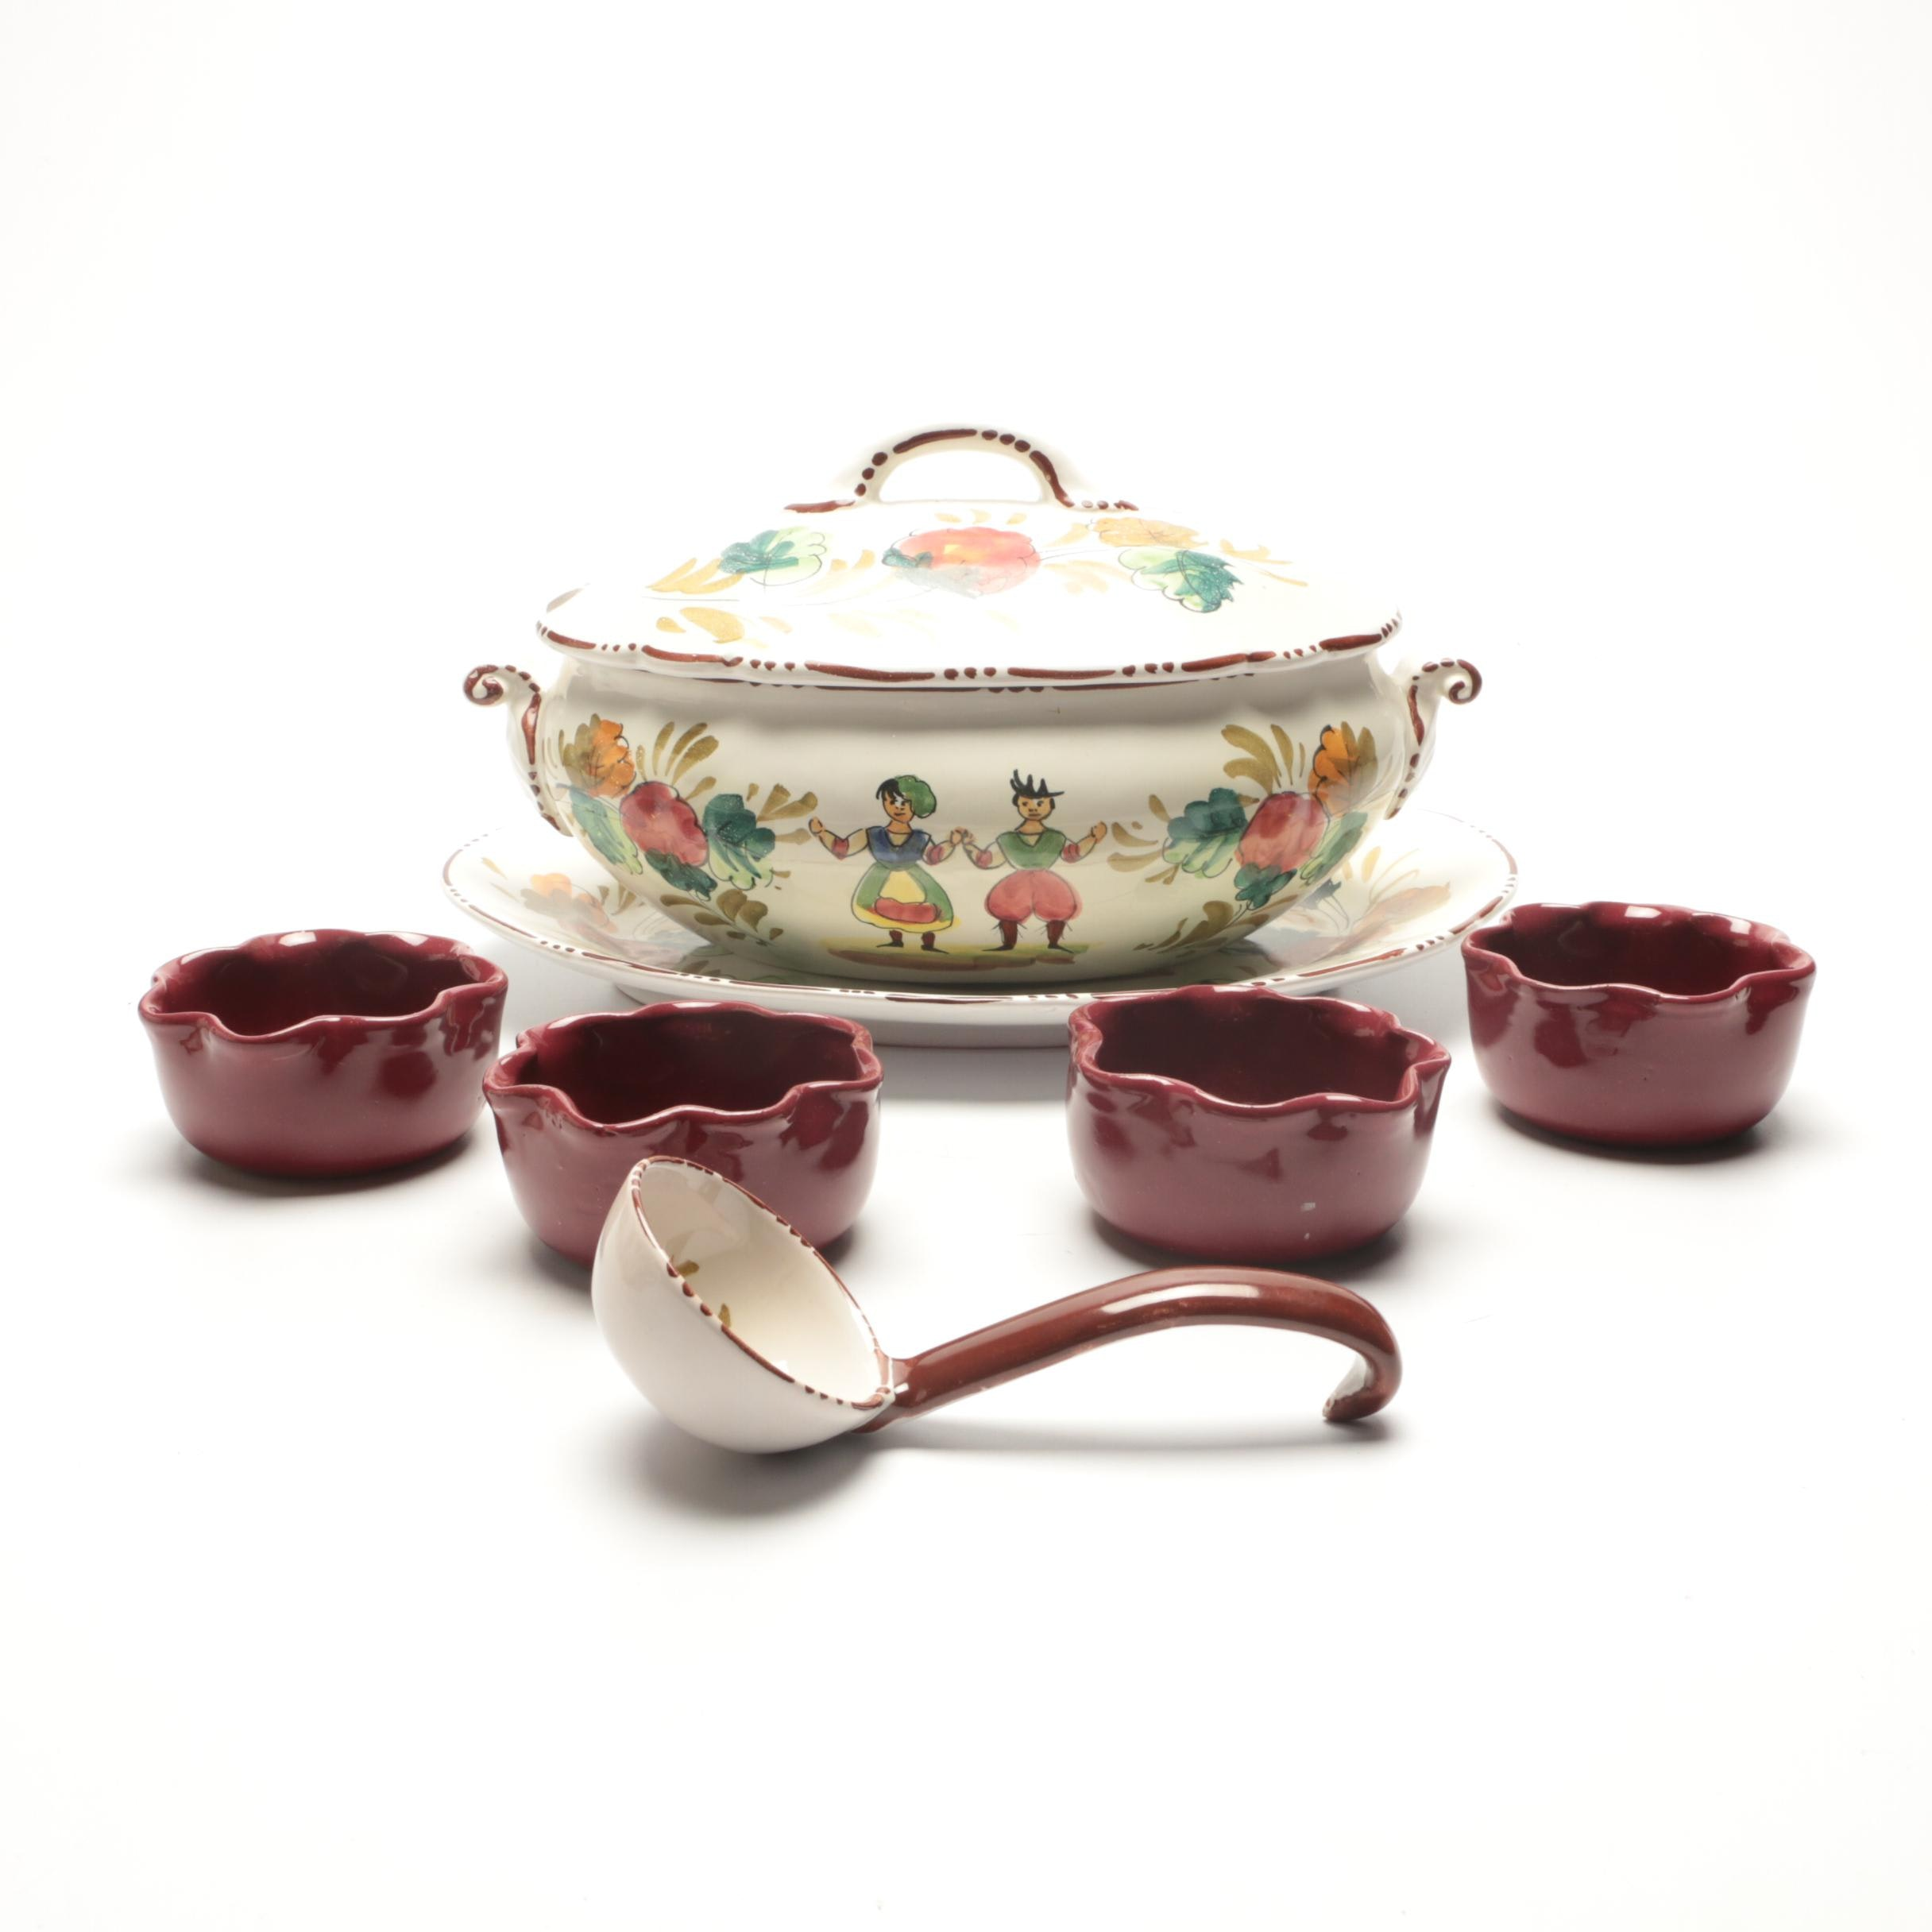 Italian Faience Soup Tureen with Bybee Pottery Bowls